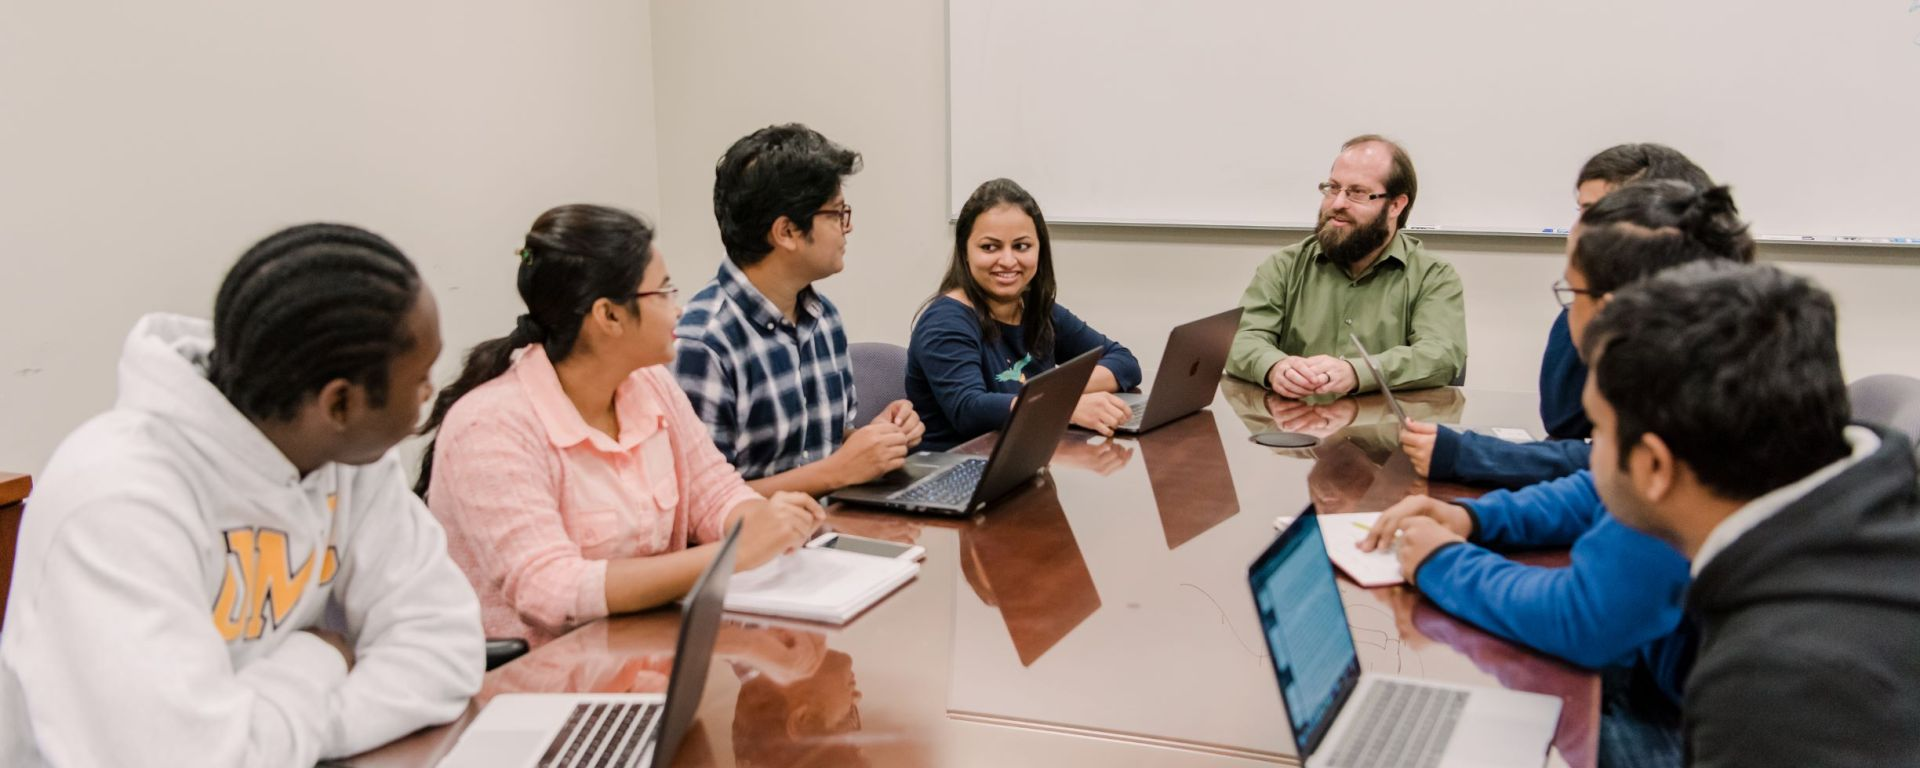 Seven students and a professor sit around a conference table. Five students have open laptops and two are taking notes on paper.